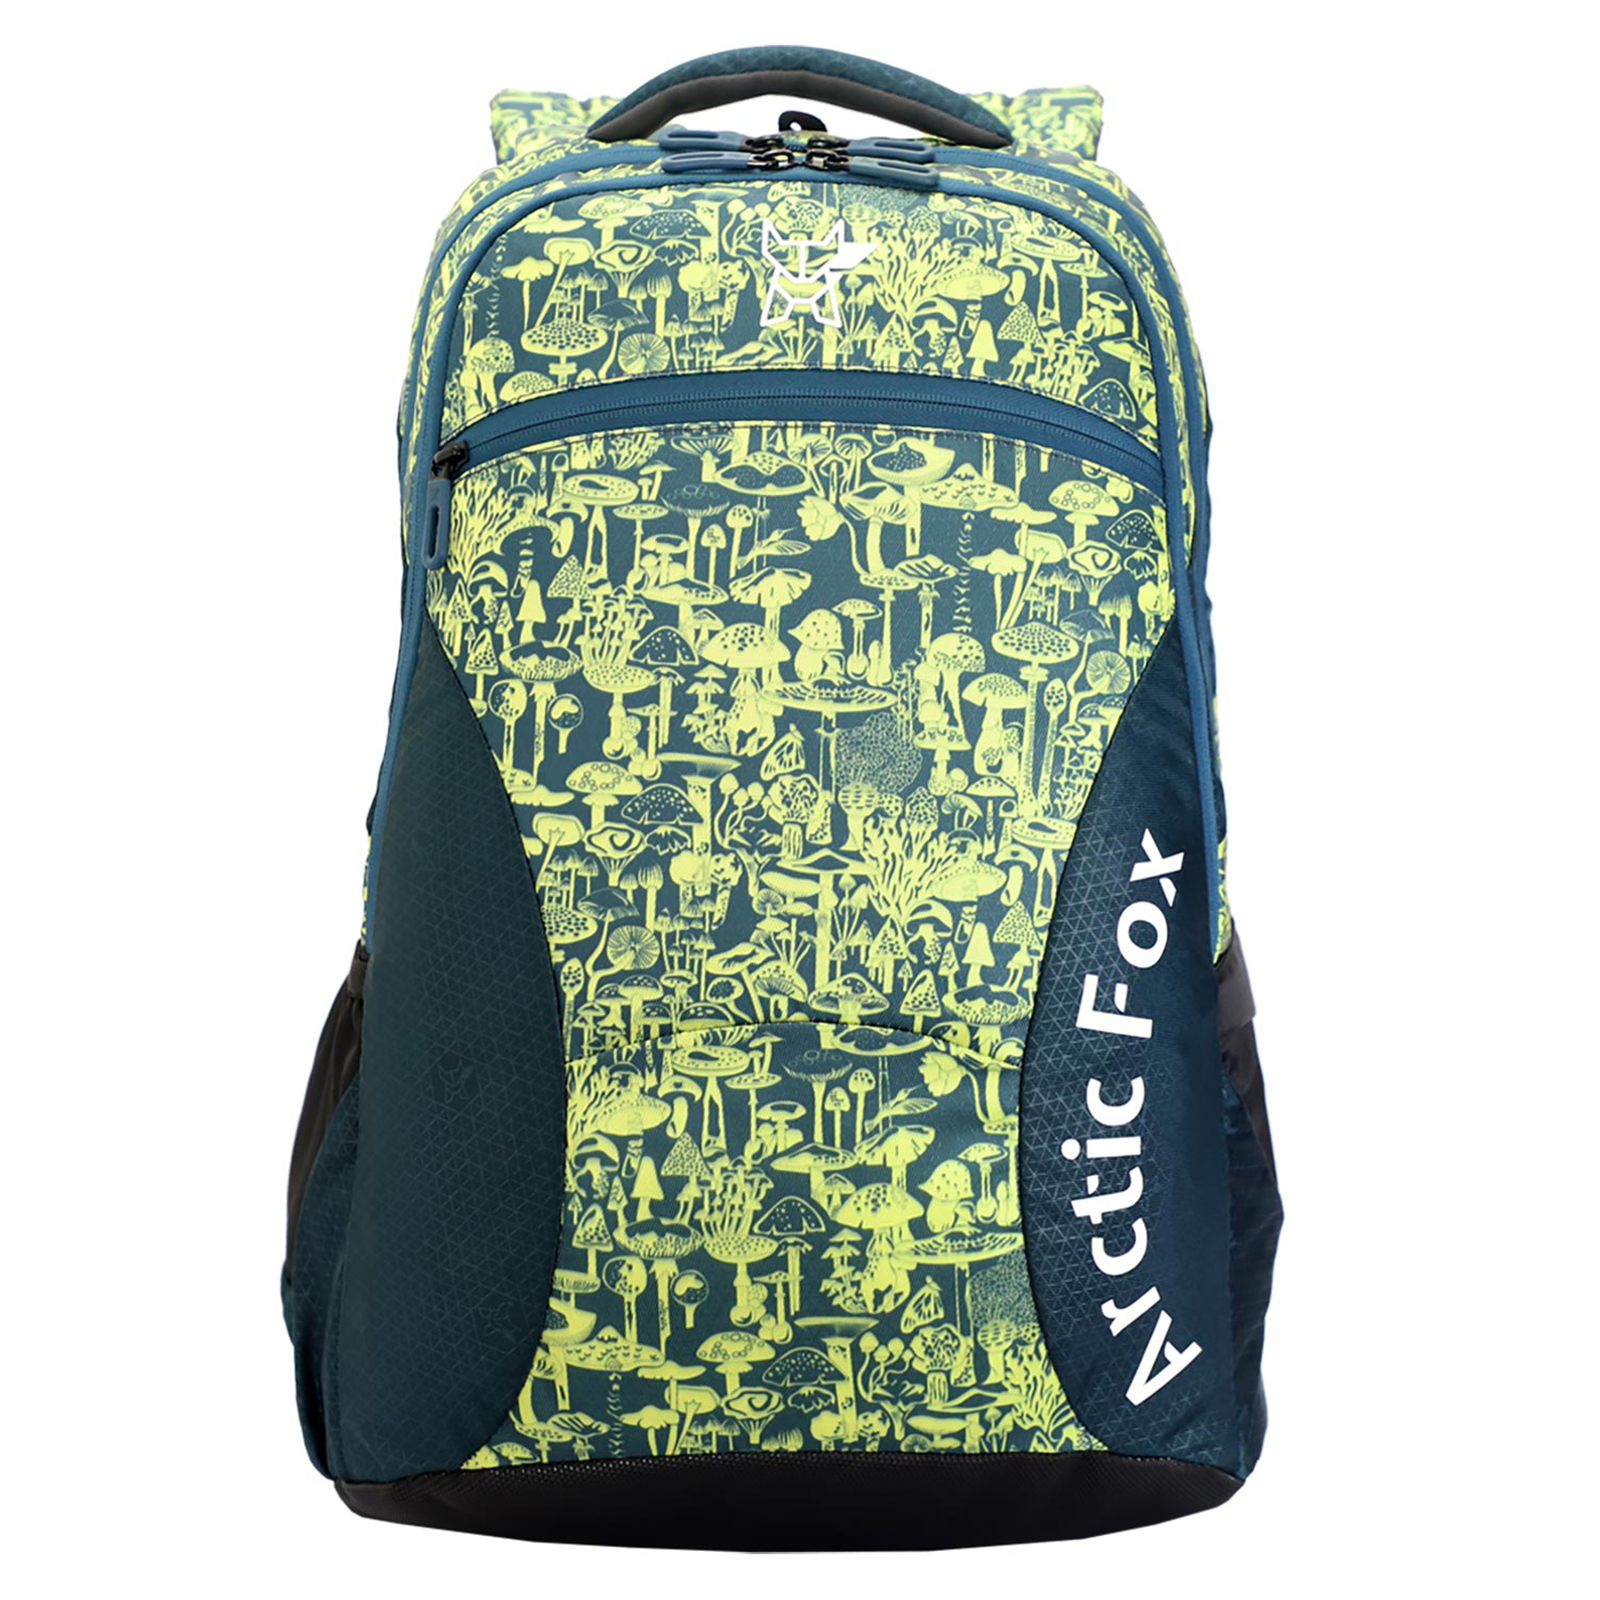 Arctic Fox Mushroom 36 Litres PU Coated Polyester Backpack (2 Spacious Compartments, FJUBPKSGZON056036, Stargazer)_1